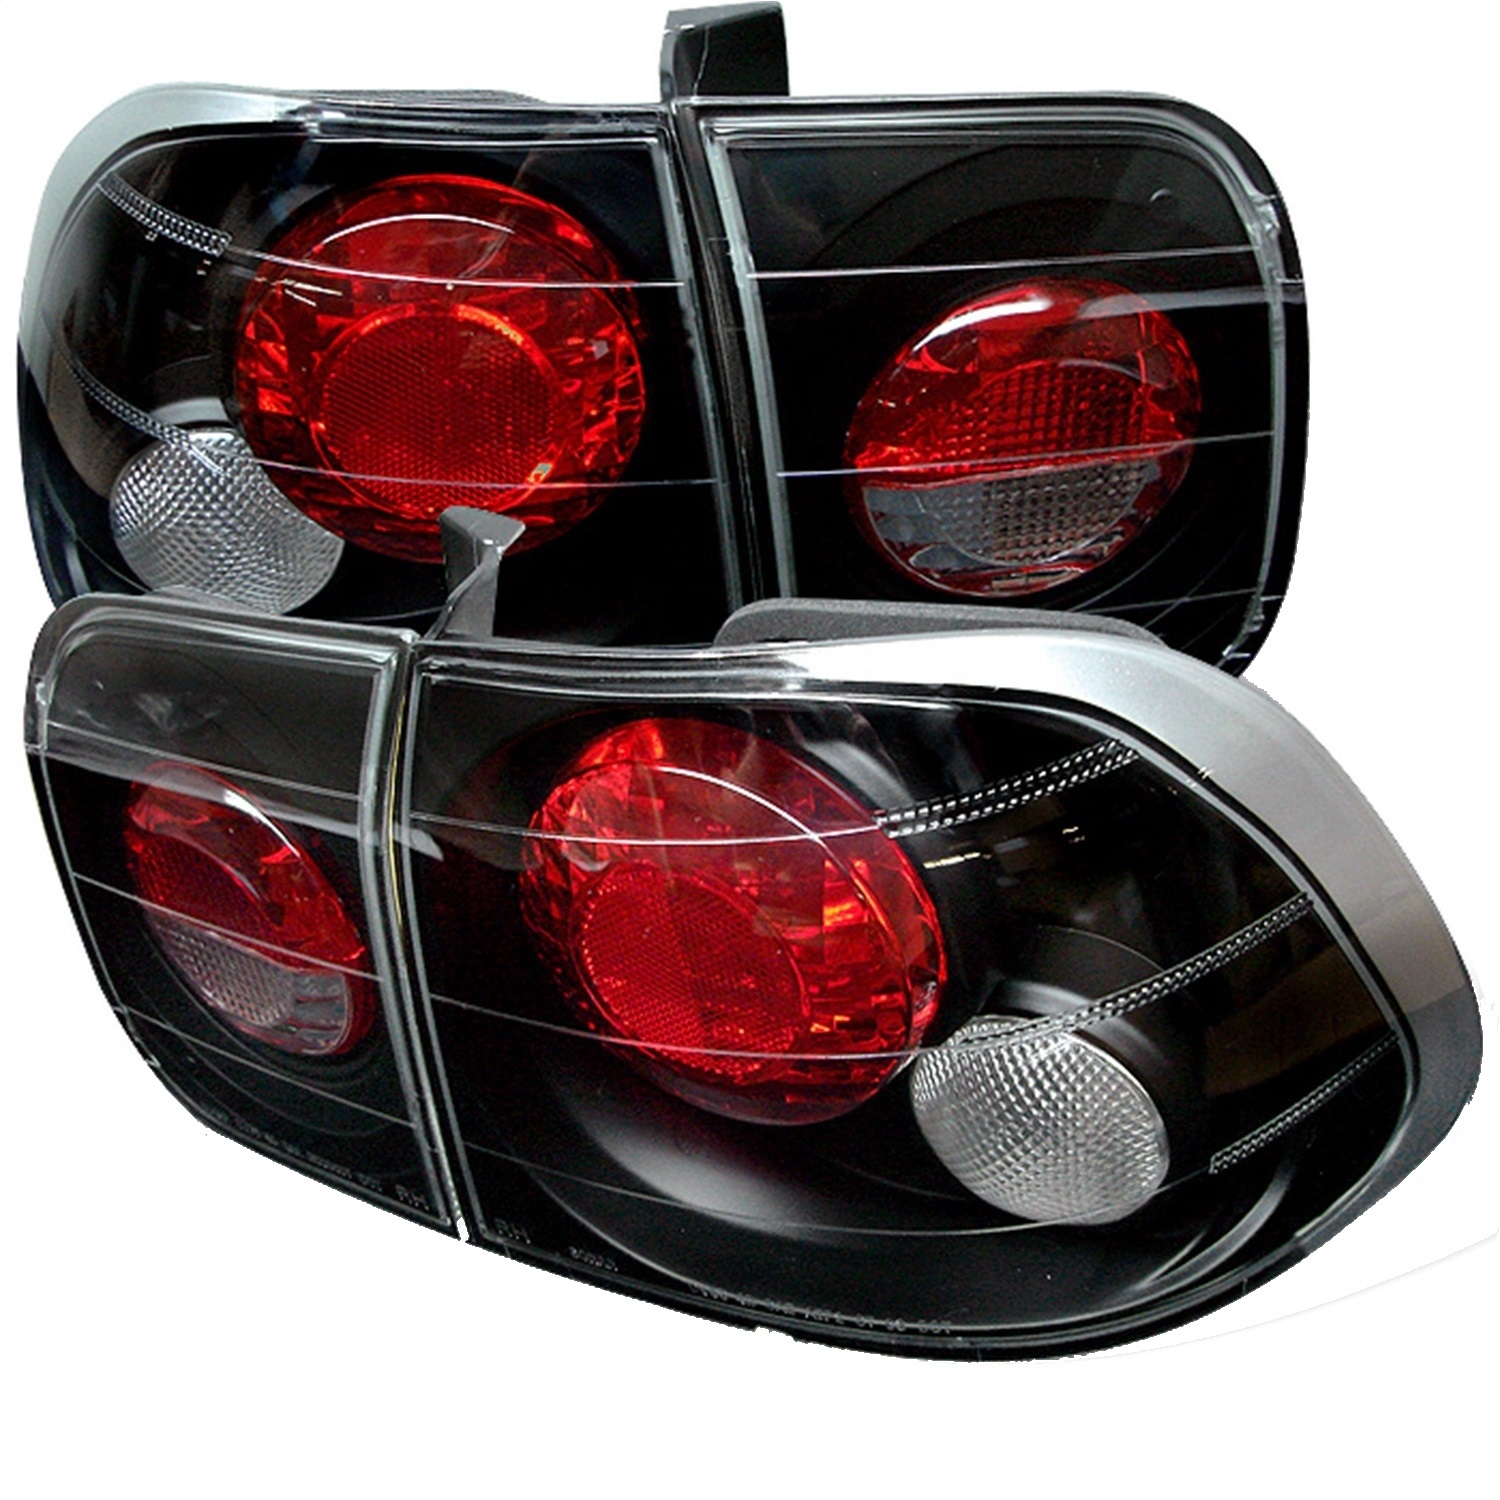 Spyder Auto 5004970 Euro Style Tail Lights Fits 96-98 Civic